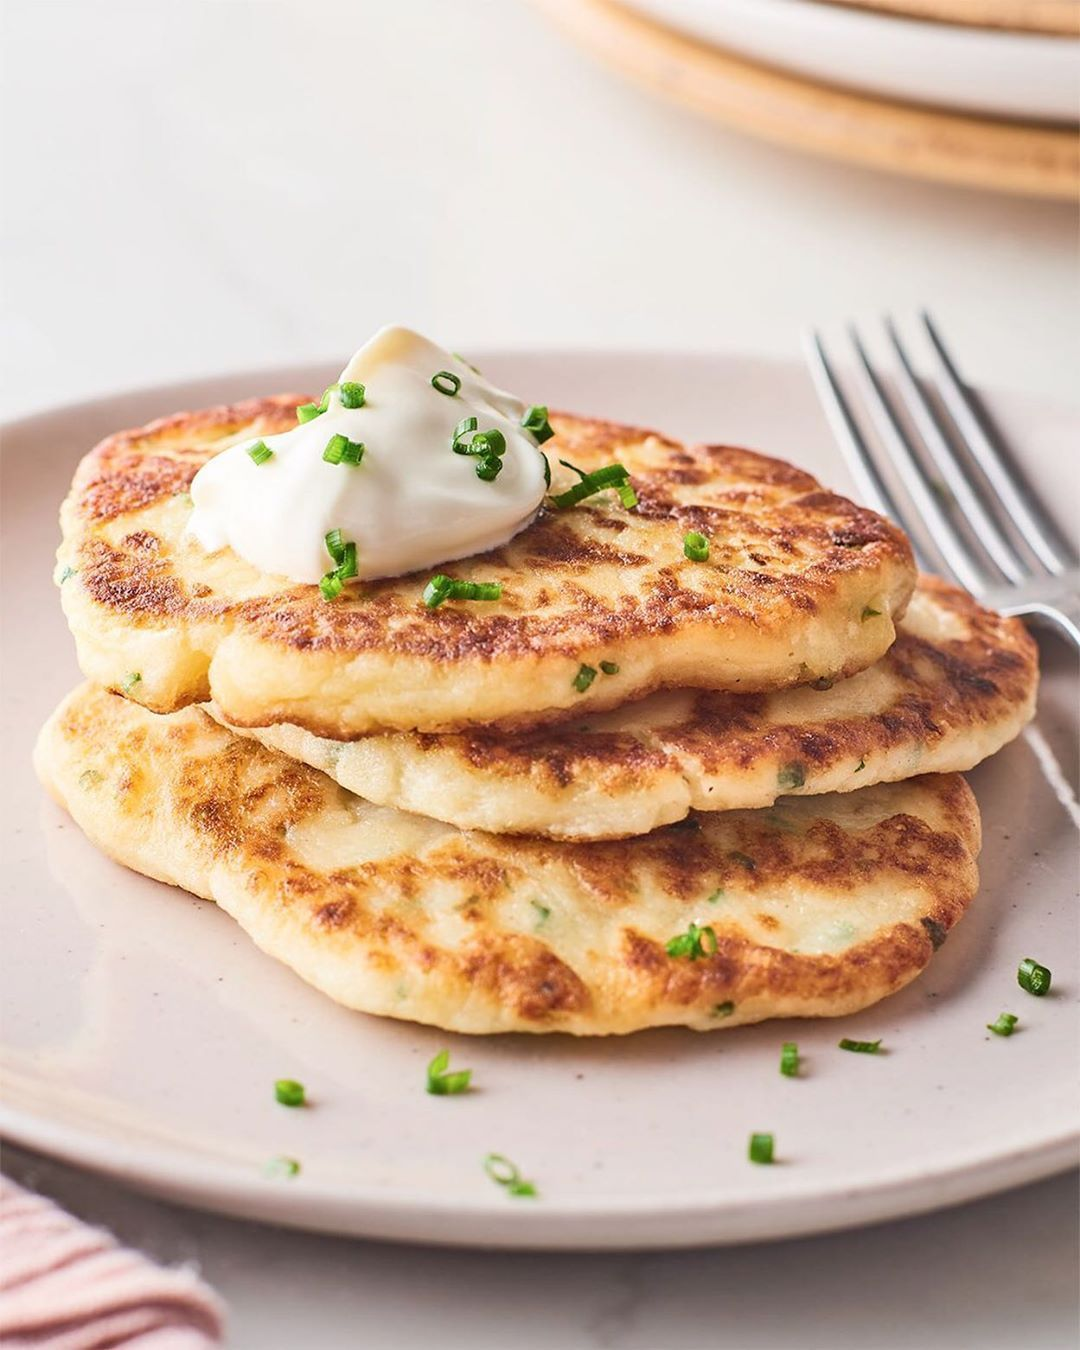 "Kitchn on Instagram: ""The only thing better than leftover mashed potatoes is leftover mashed potatoes that you turned into crispy potato pancakes!  Serve them…"" #potatopancakesfrommashedpotatoes #potatopancakesfrommashedpotatoes"